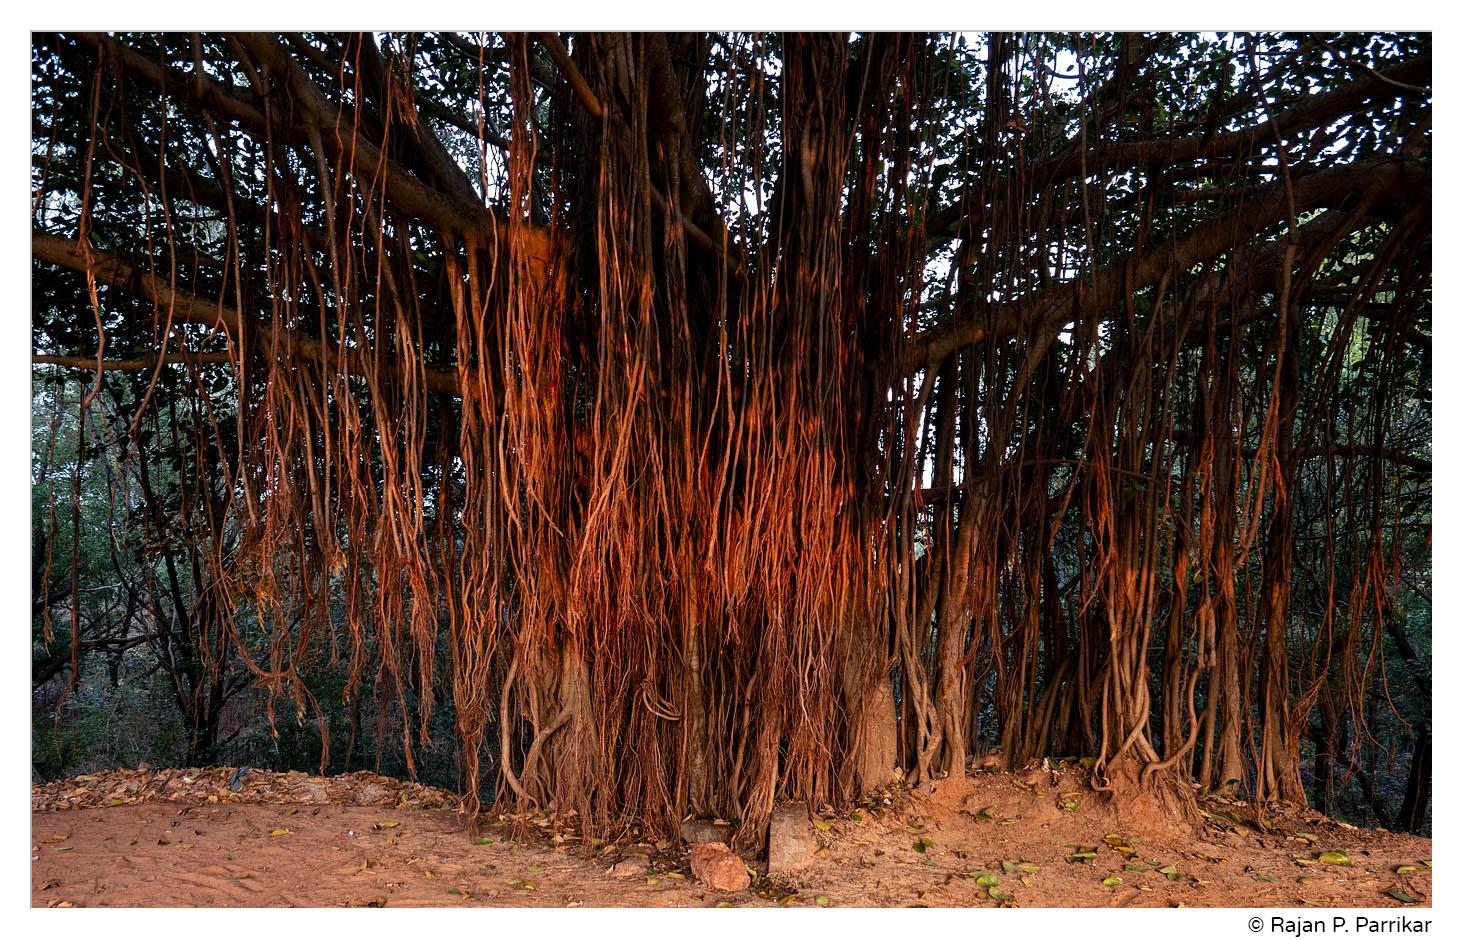 Banyan tree in Sinquerim, Goa